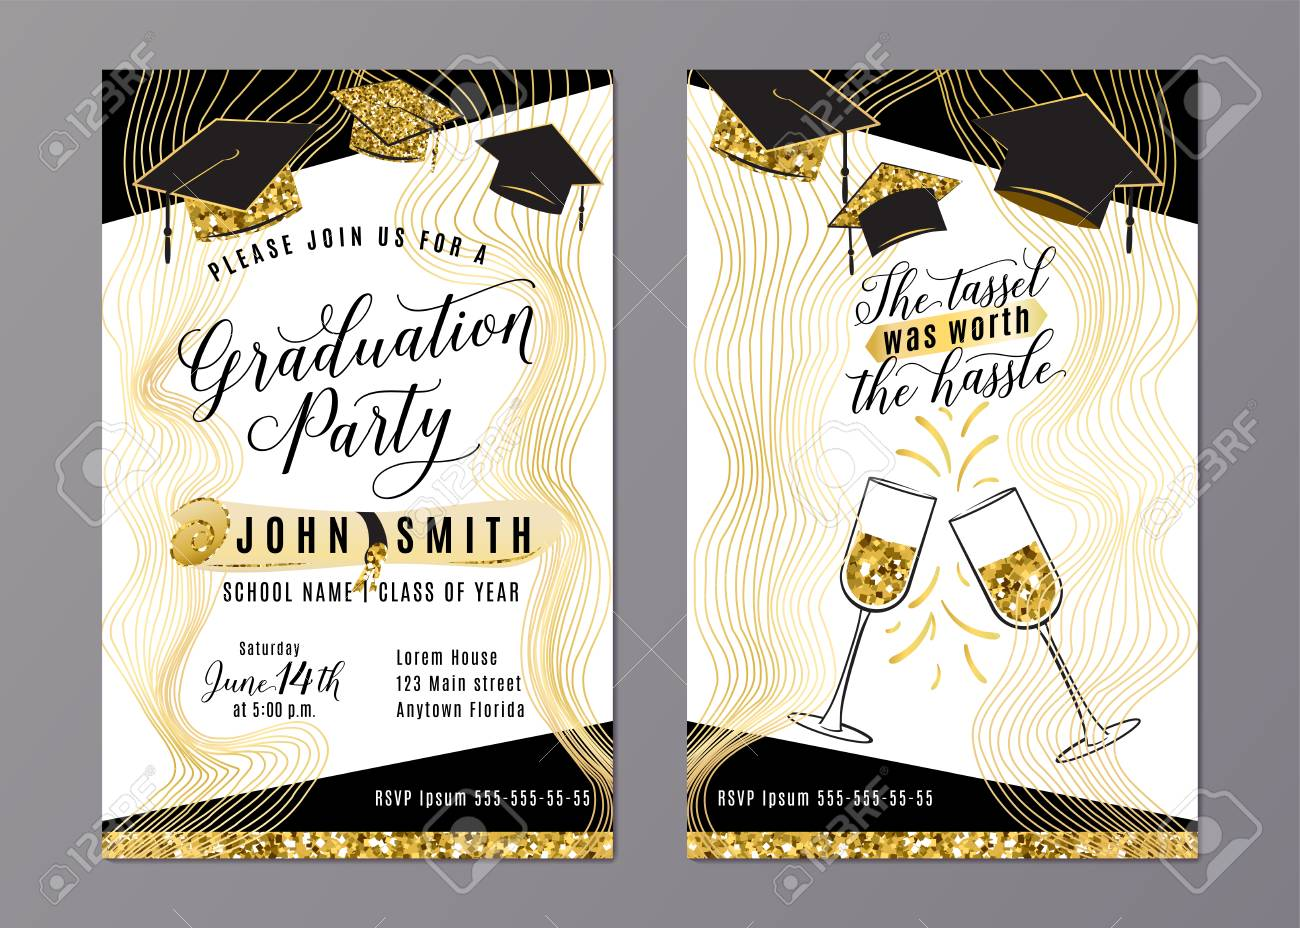 Graduation Party Class Of 2018 Vertical Invitation Card With.. Royalty Free  Cliparts, Vectors, And Stock Illustration. Image 101729542.